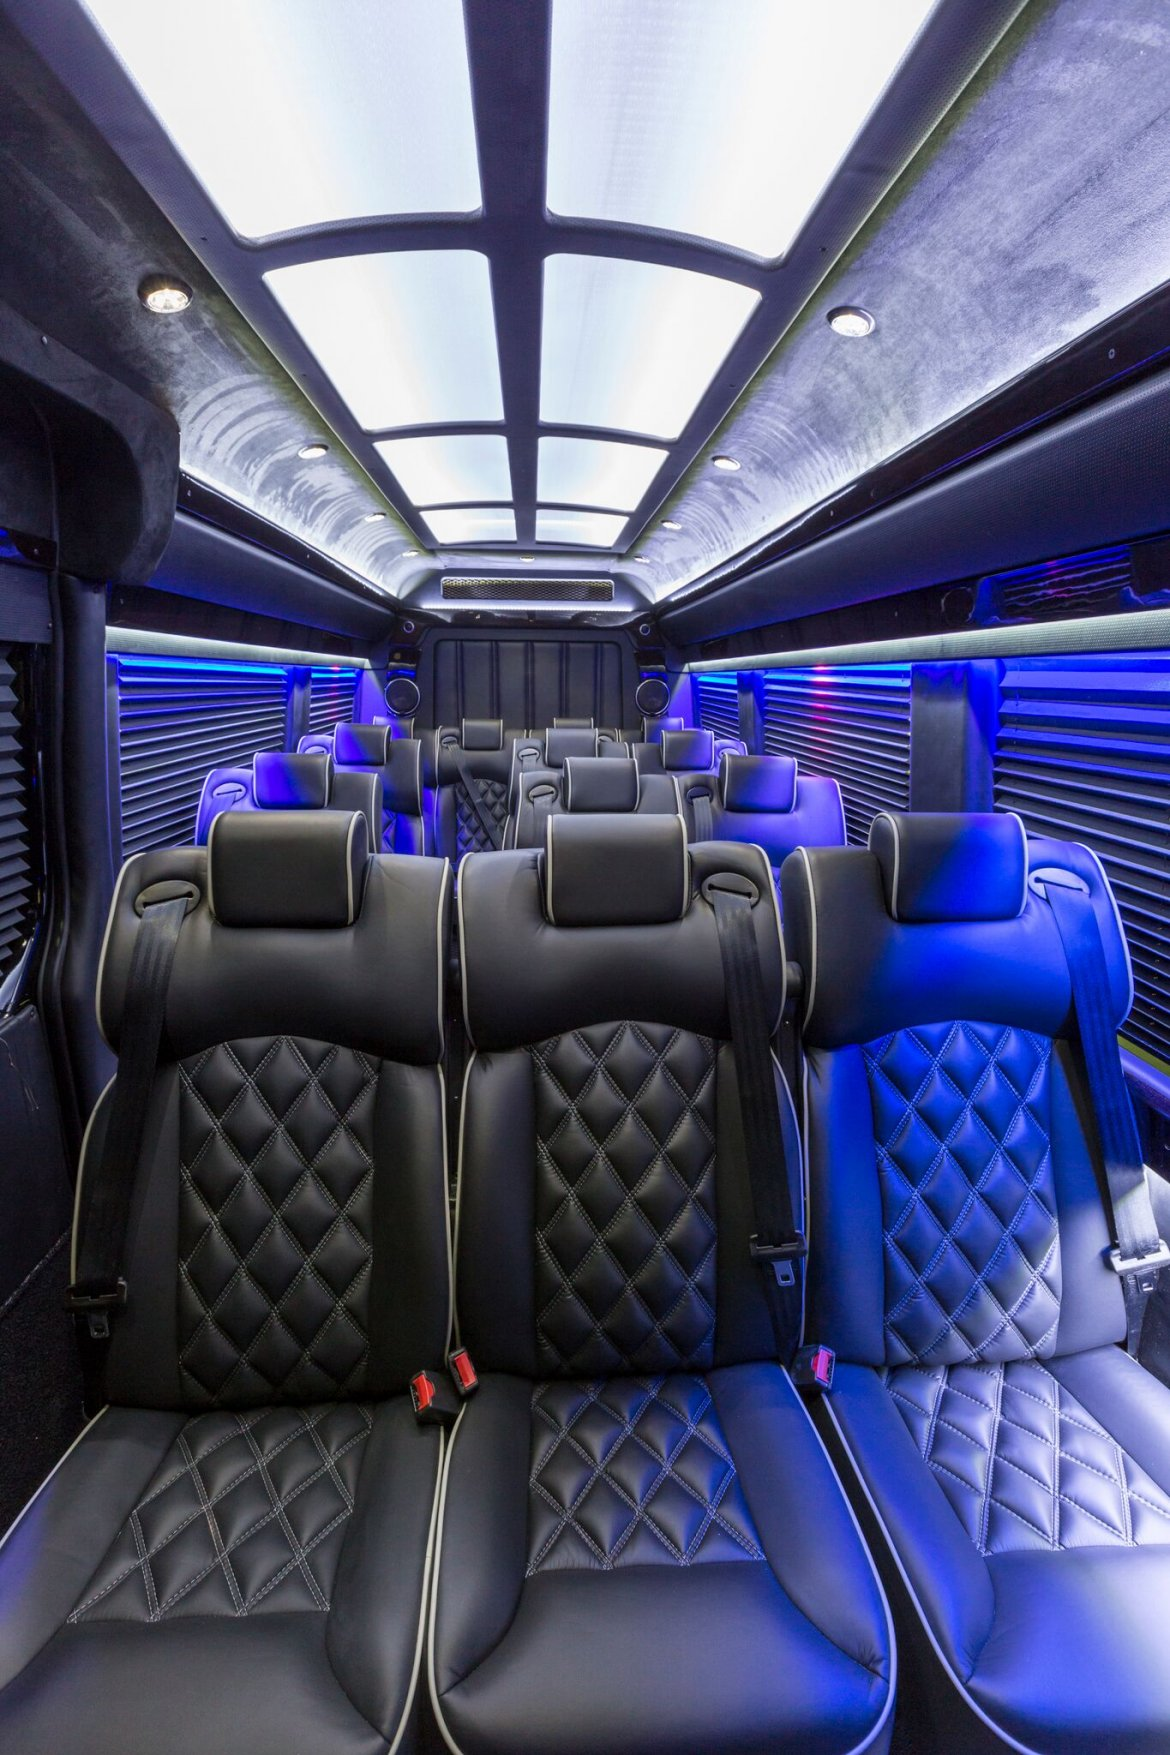 Suv For Sale By Owner >> New 2016 Mercedes-Benz Sprinter luxury 3500 for sale #WS-10985 | We Sell Limos